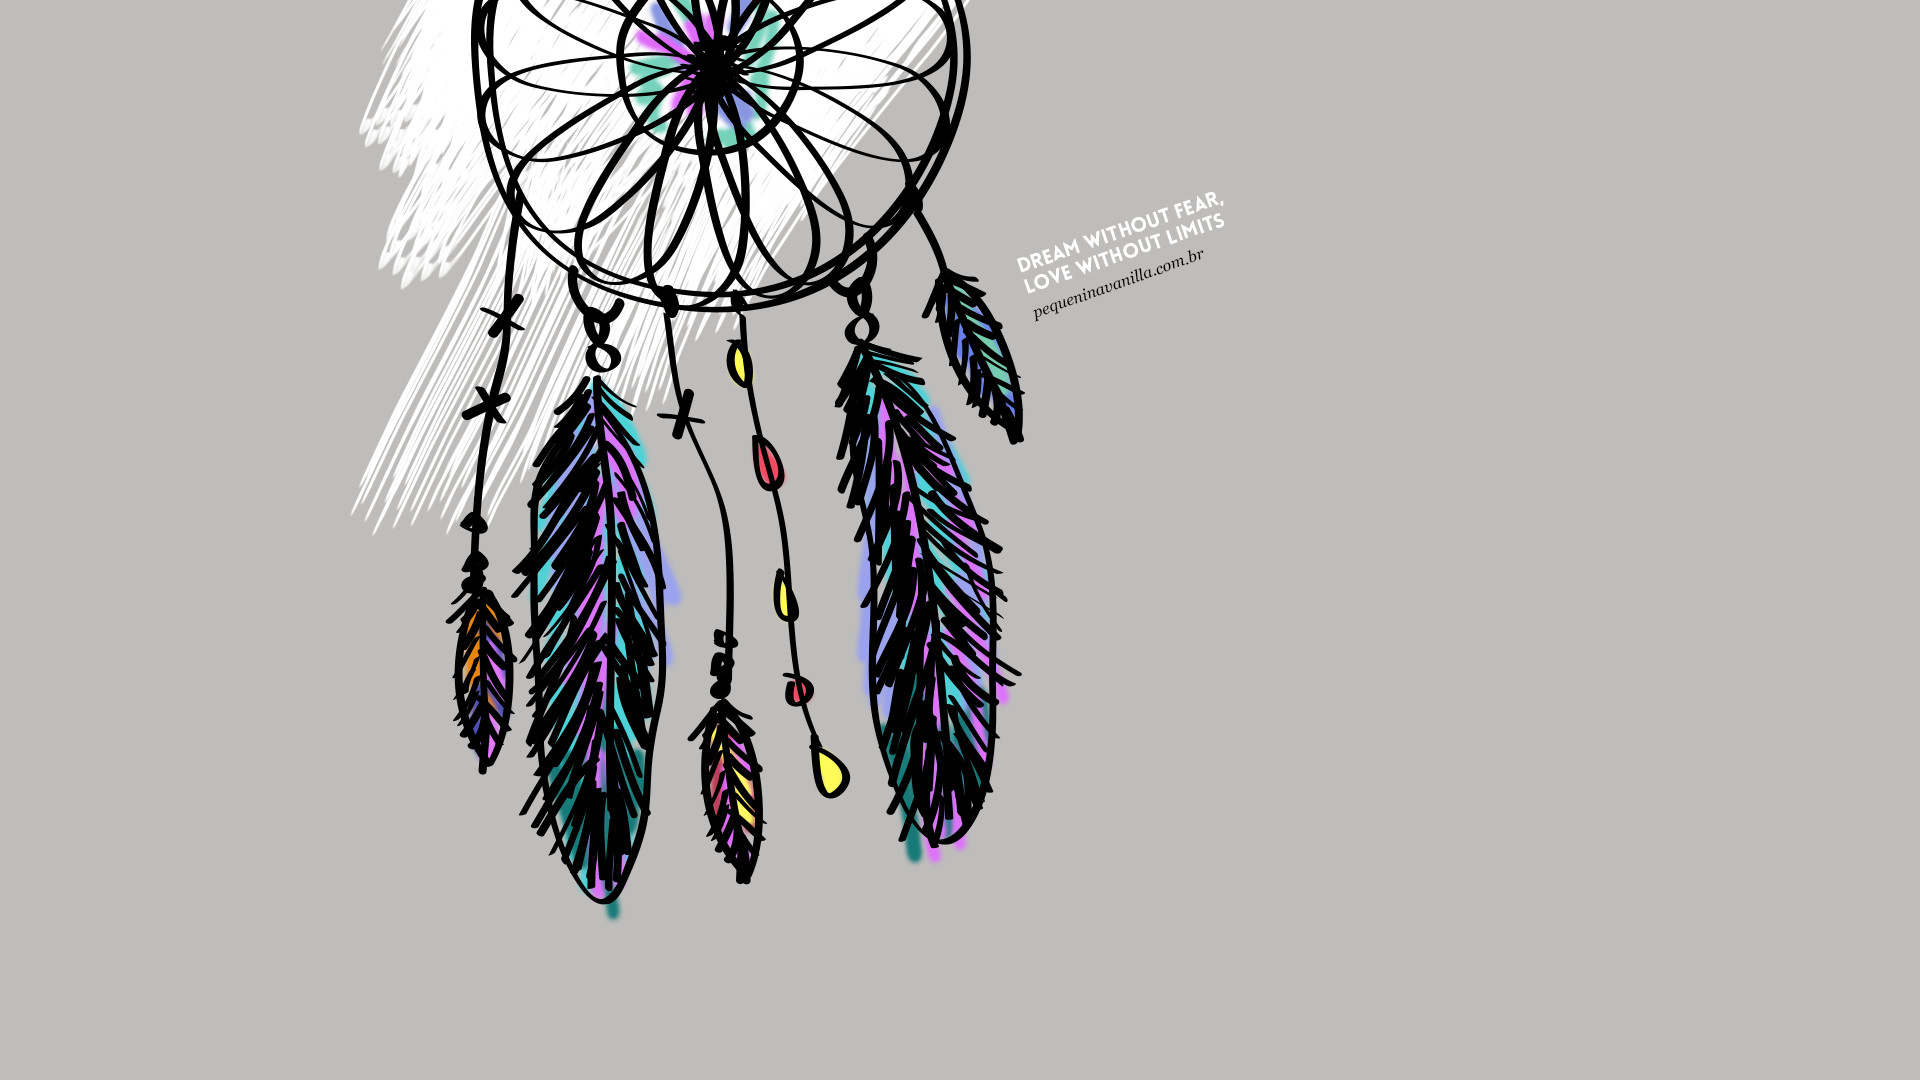 Grey illustrated dreamcatcher Dream Love desktop wallpaper background |  iPhone and desktop wallpapers | Pinterest | Wallpaper backgrounds and  Wallpaper